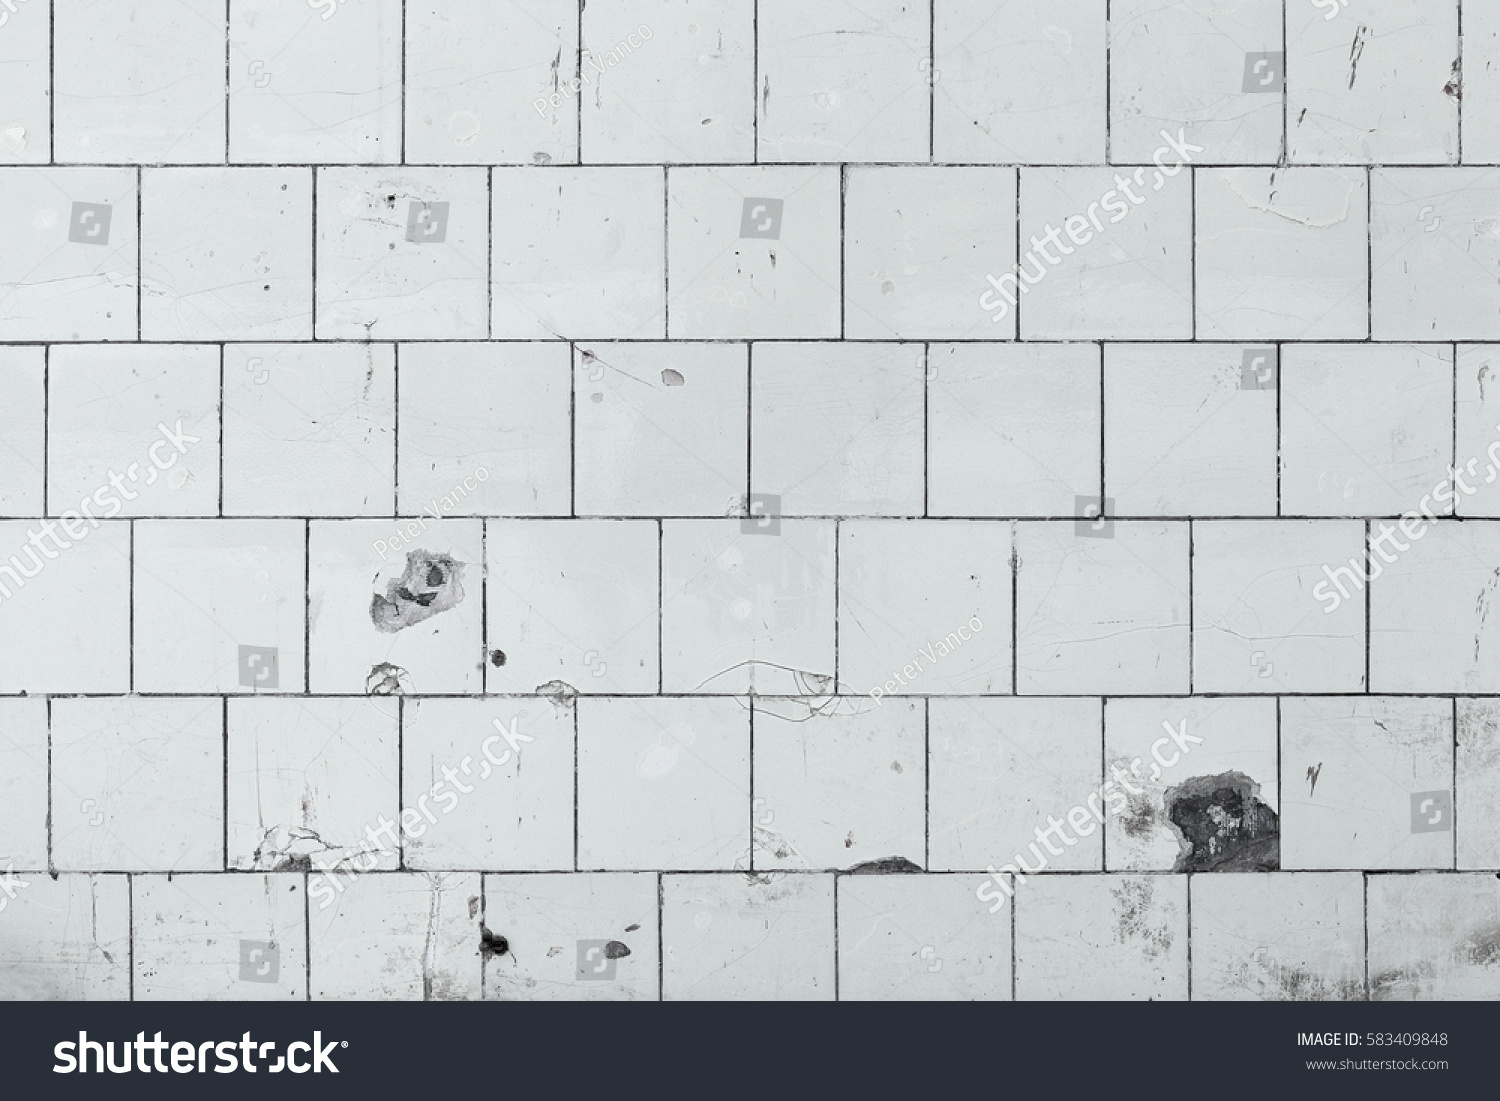 Old ceramic wall tiling wallpaper white stock photo 583409848 old ceramic wall tiling wallpaper white ceramic wall tiling background image thin walled dailygadgetfo Choice Image